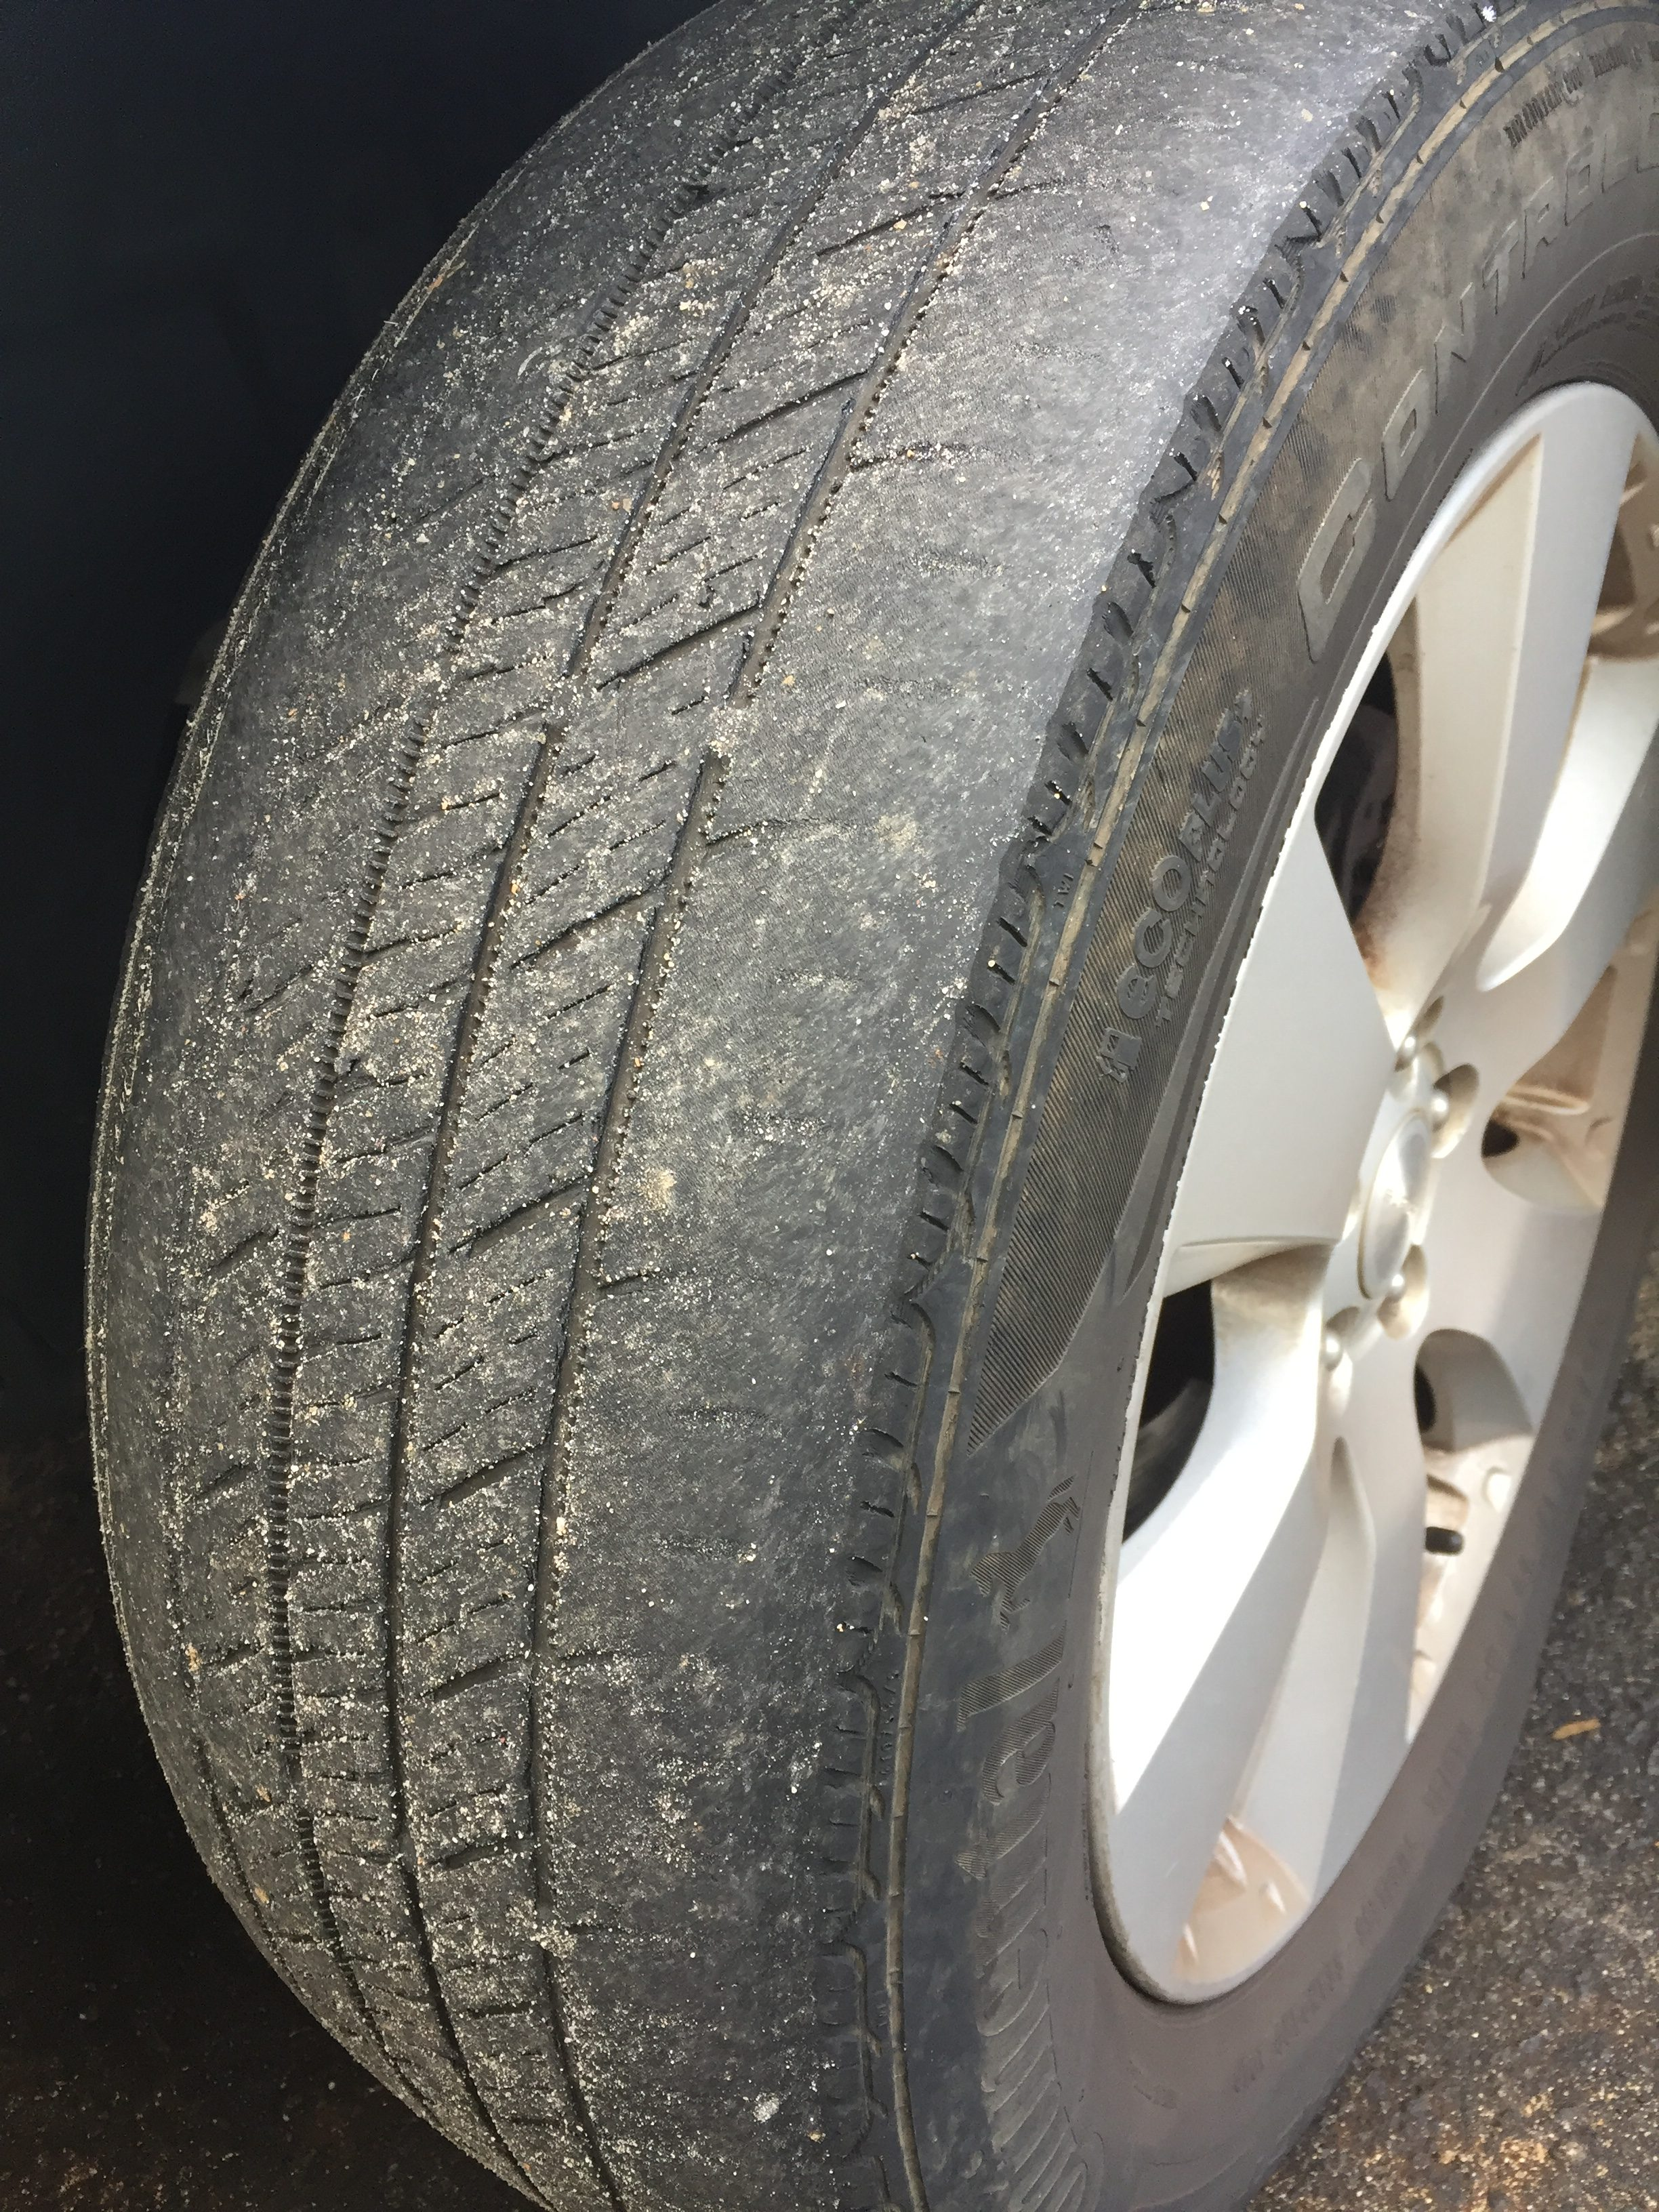 Diagnosing Tire Wear